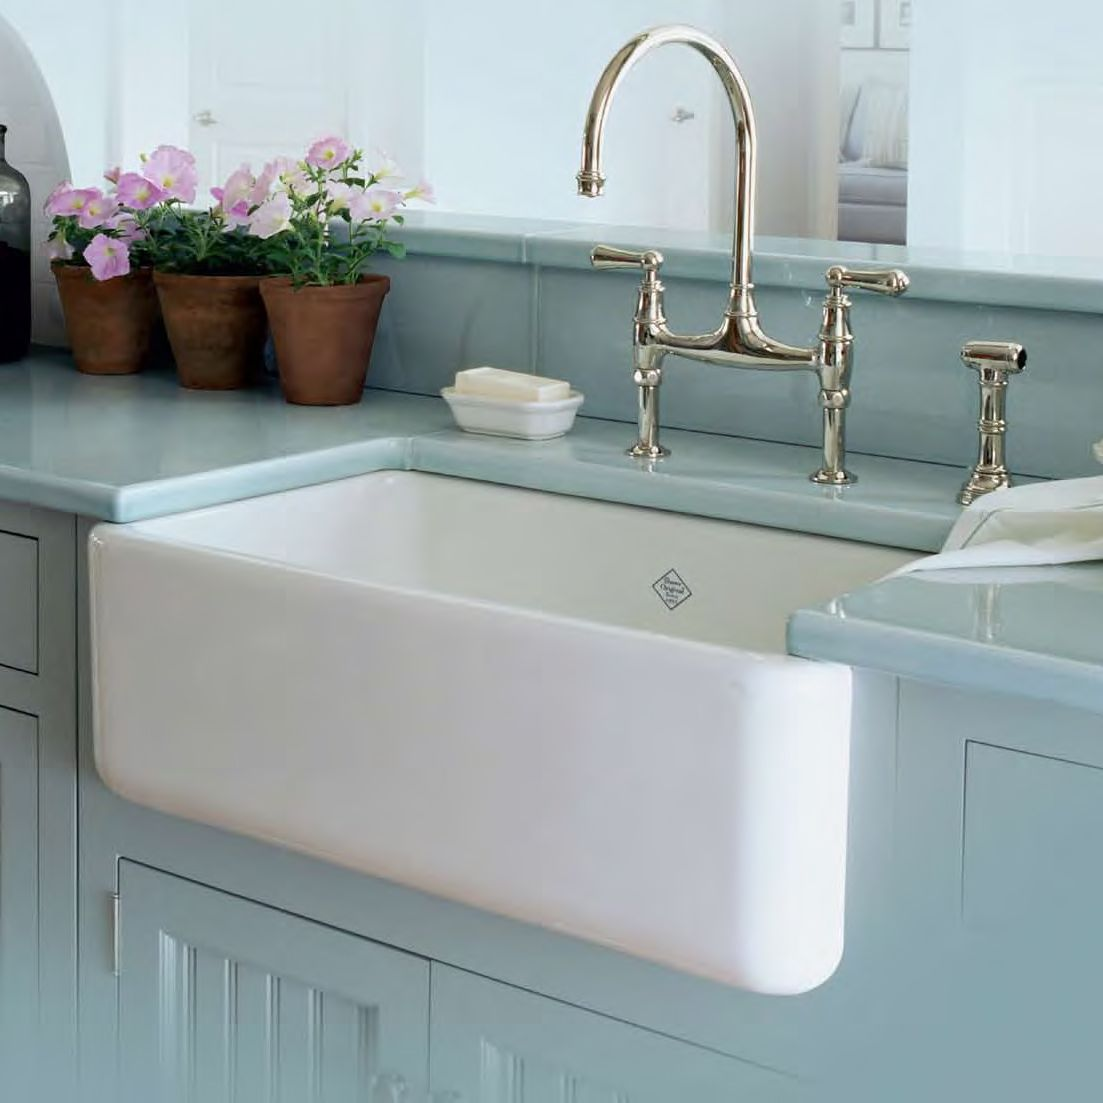 Rohl Shaw White Apron Front Sink 18 x 30 Single Bowl w/ Bridge ...